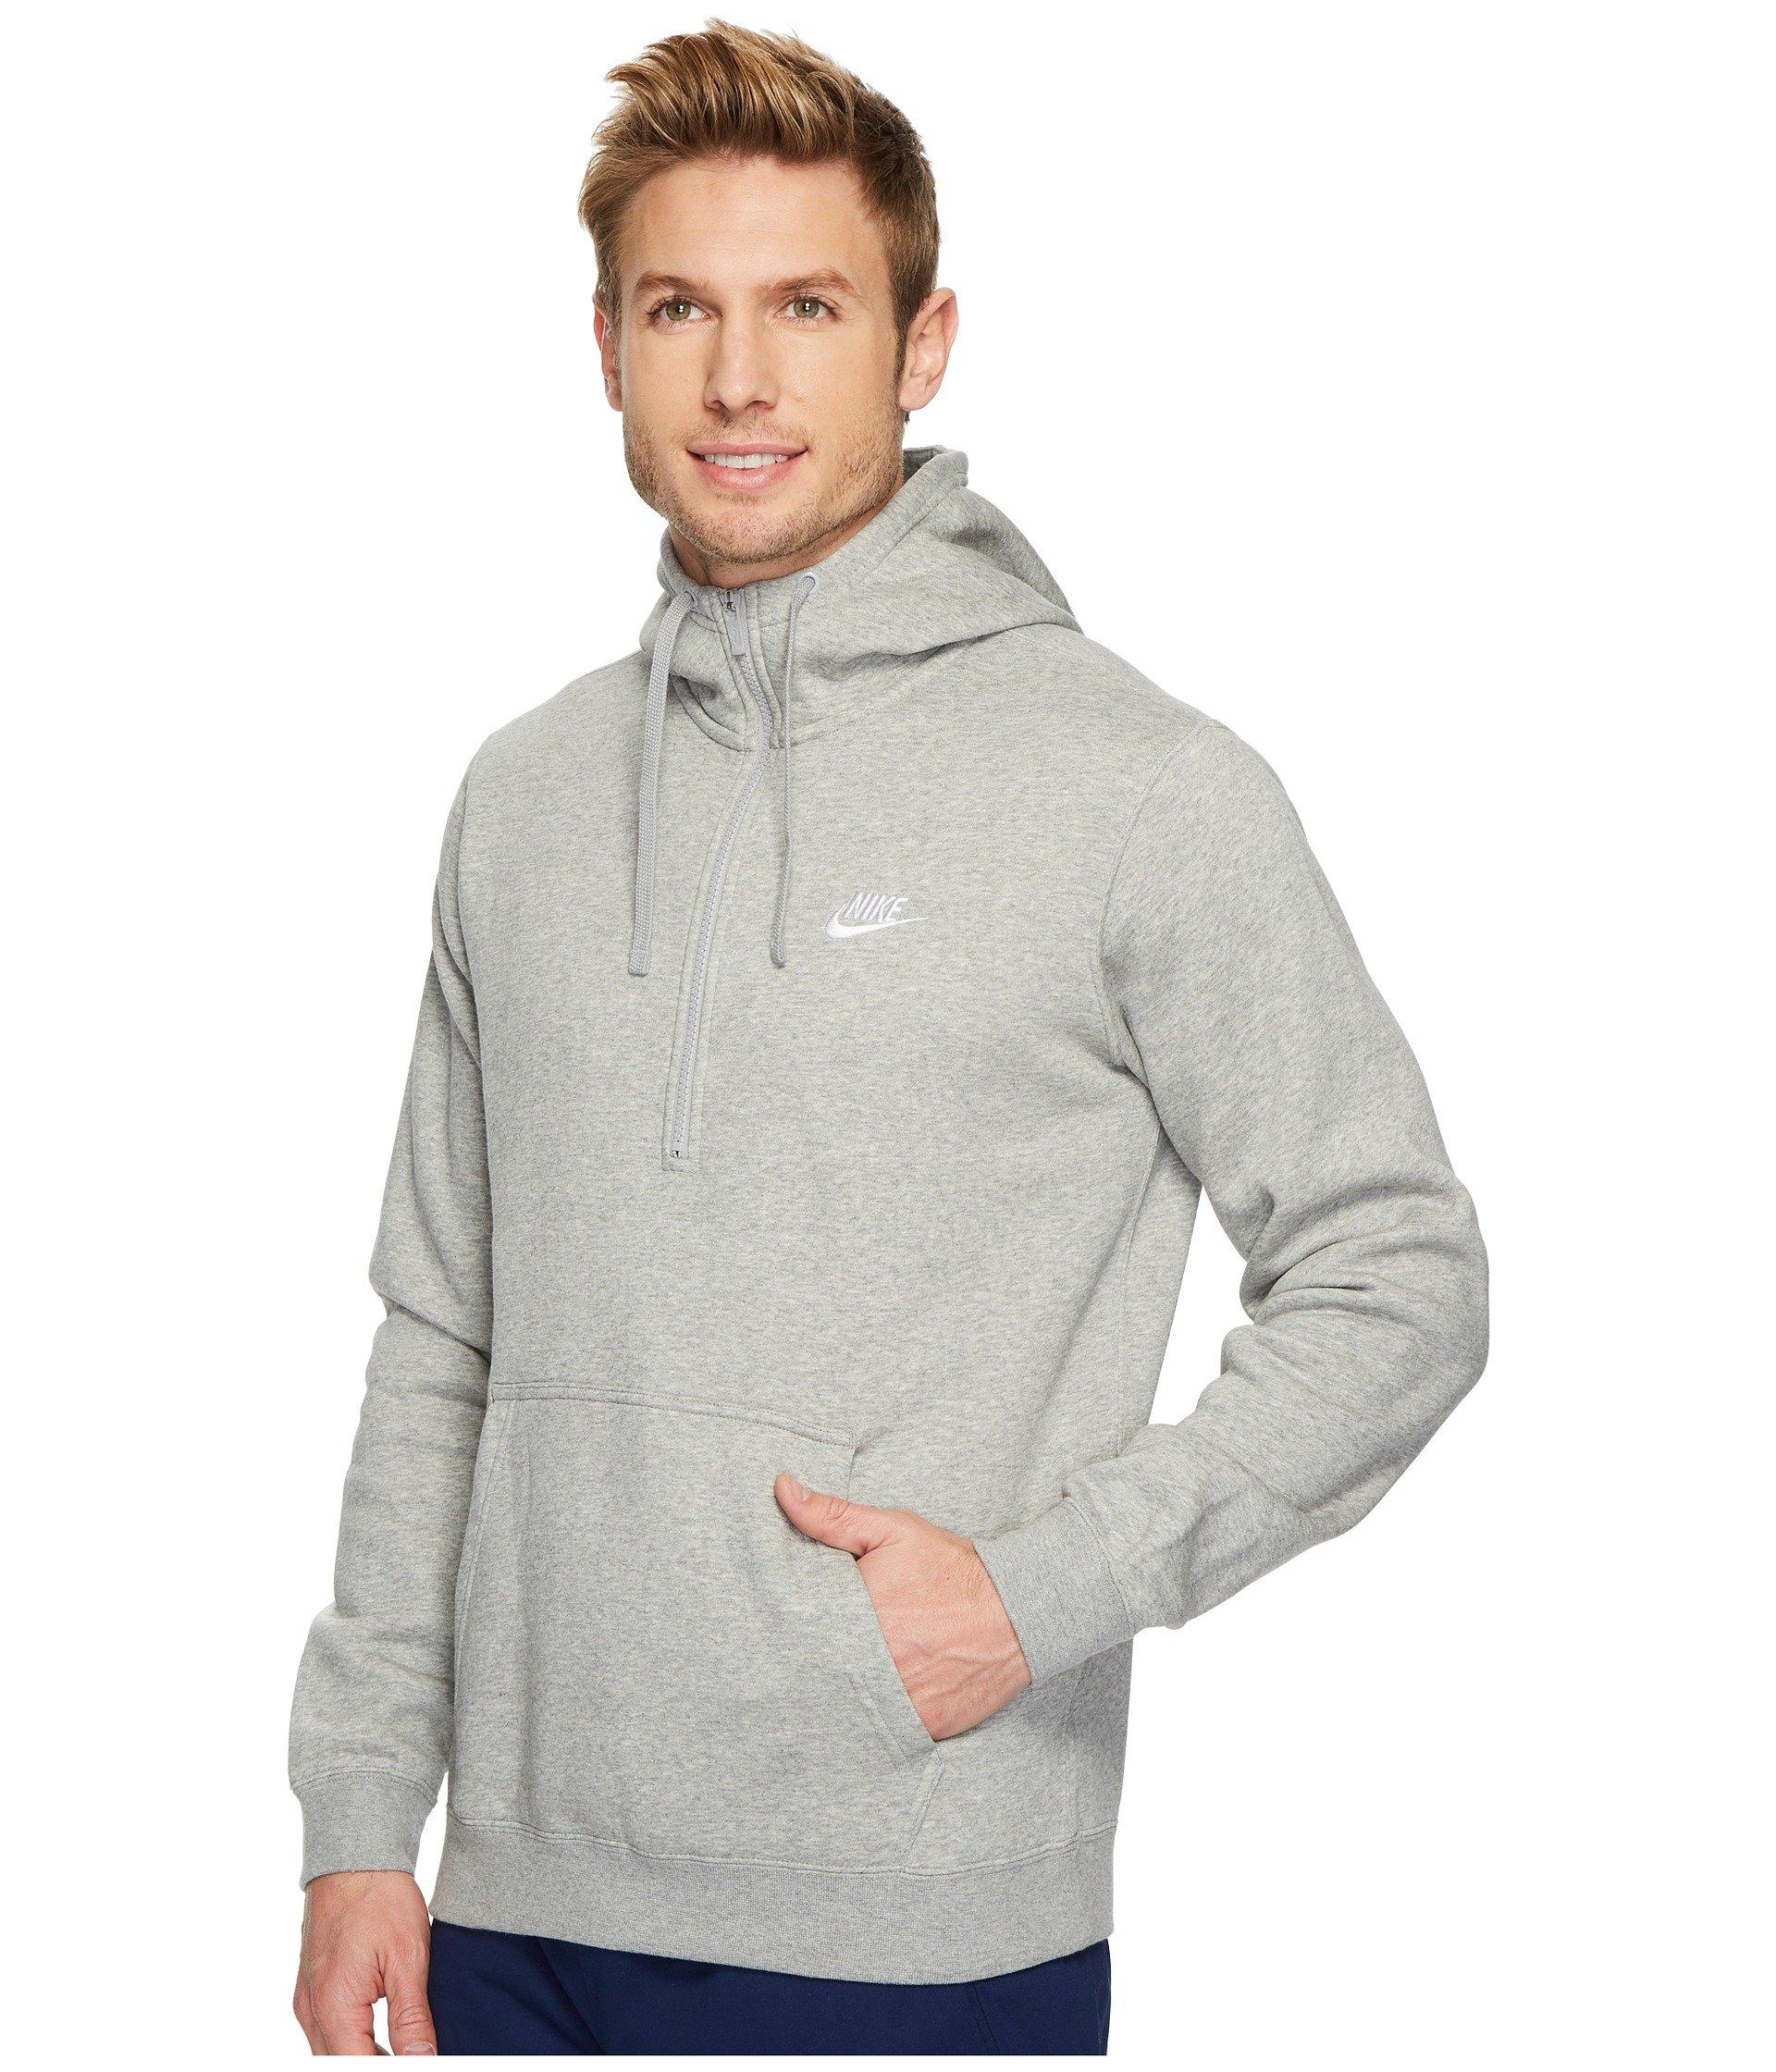 226682711e98 Lyst - Nike Sportswear 1 2 Zip Hoodie (black black white) Men s Sweatshirt  in Gray for Men